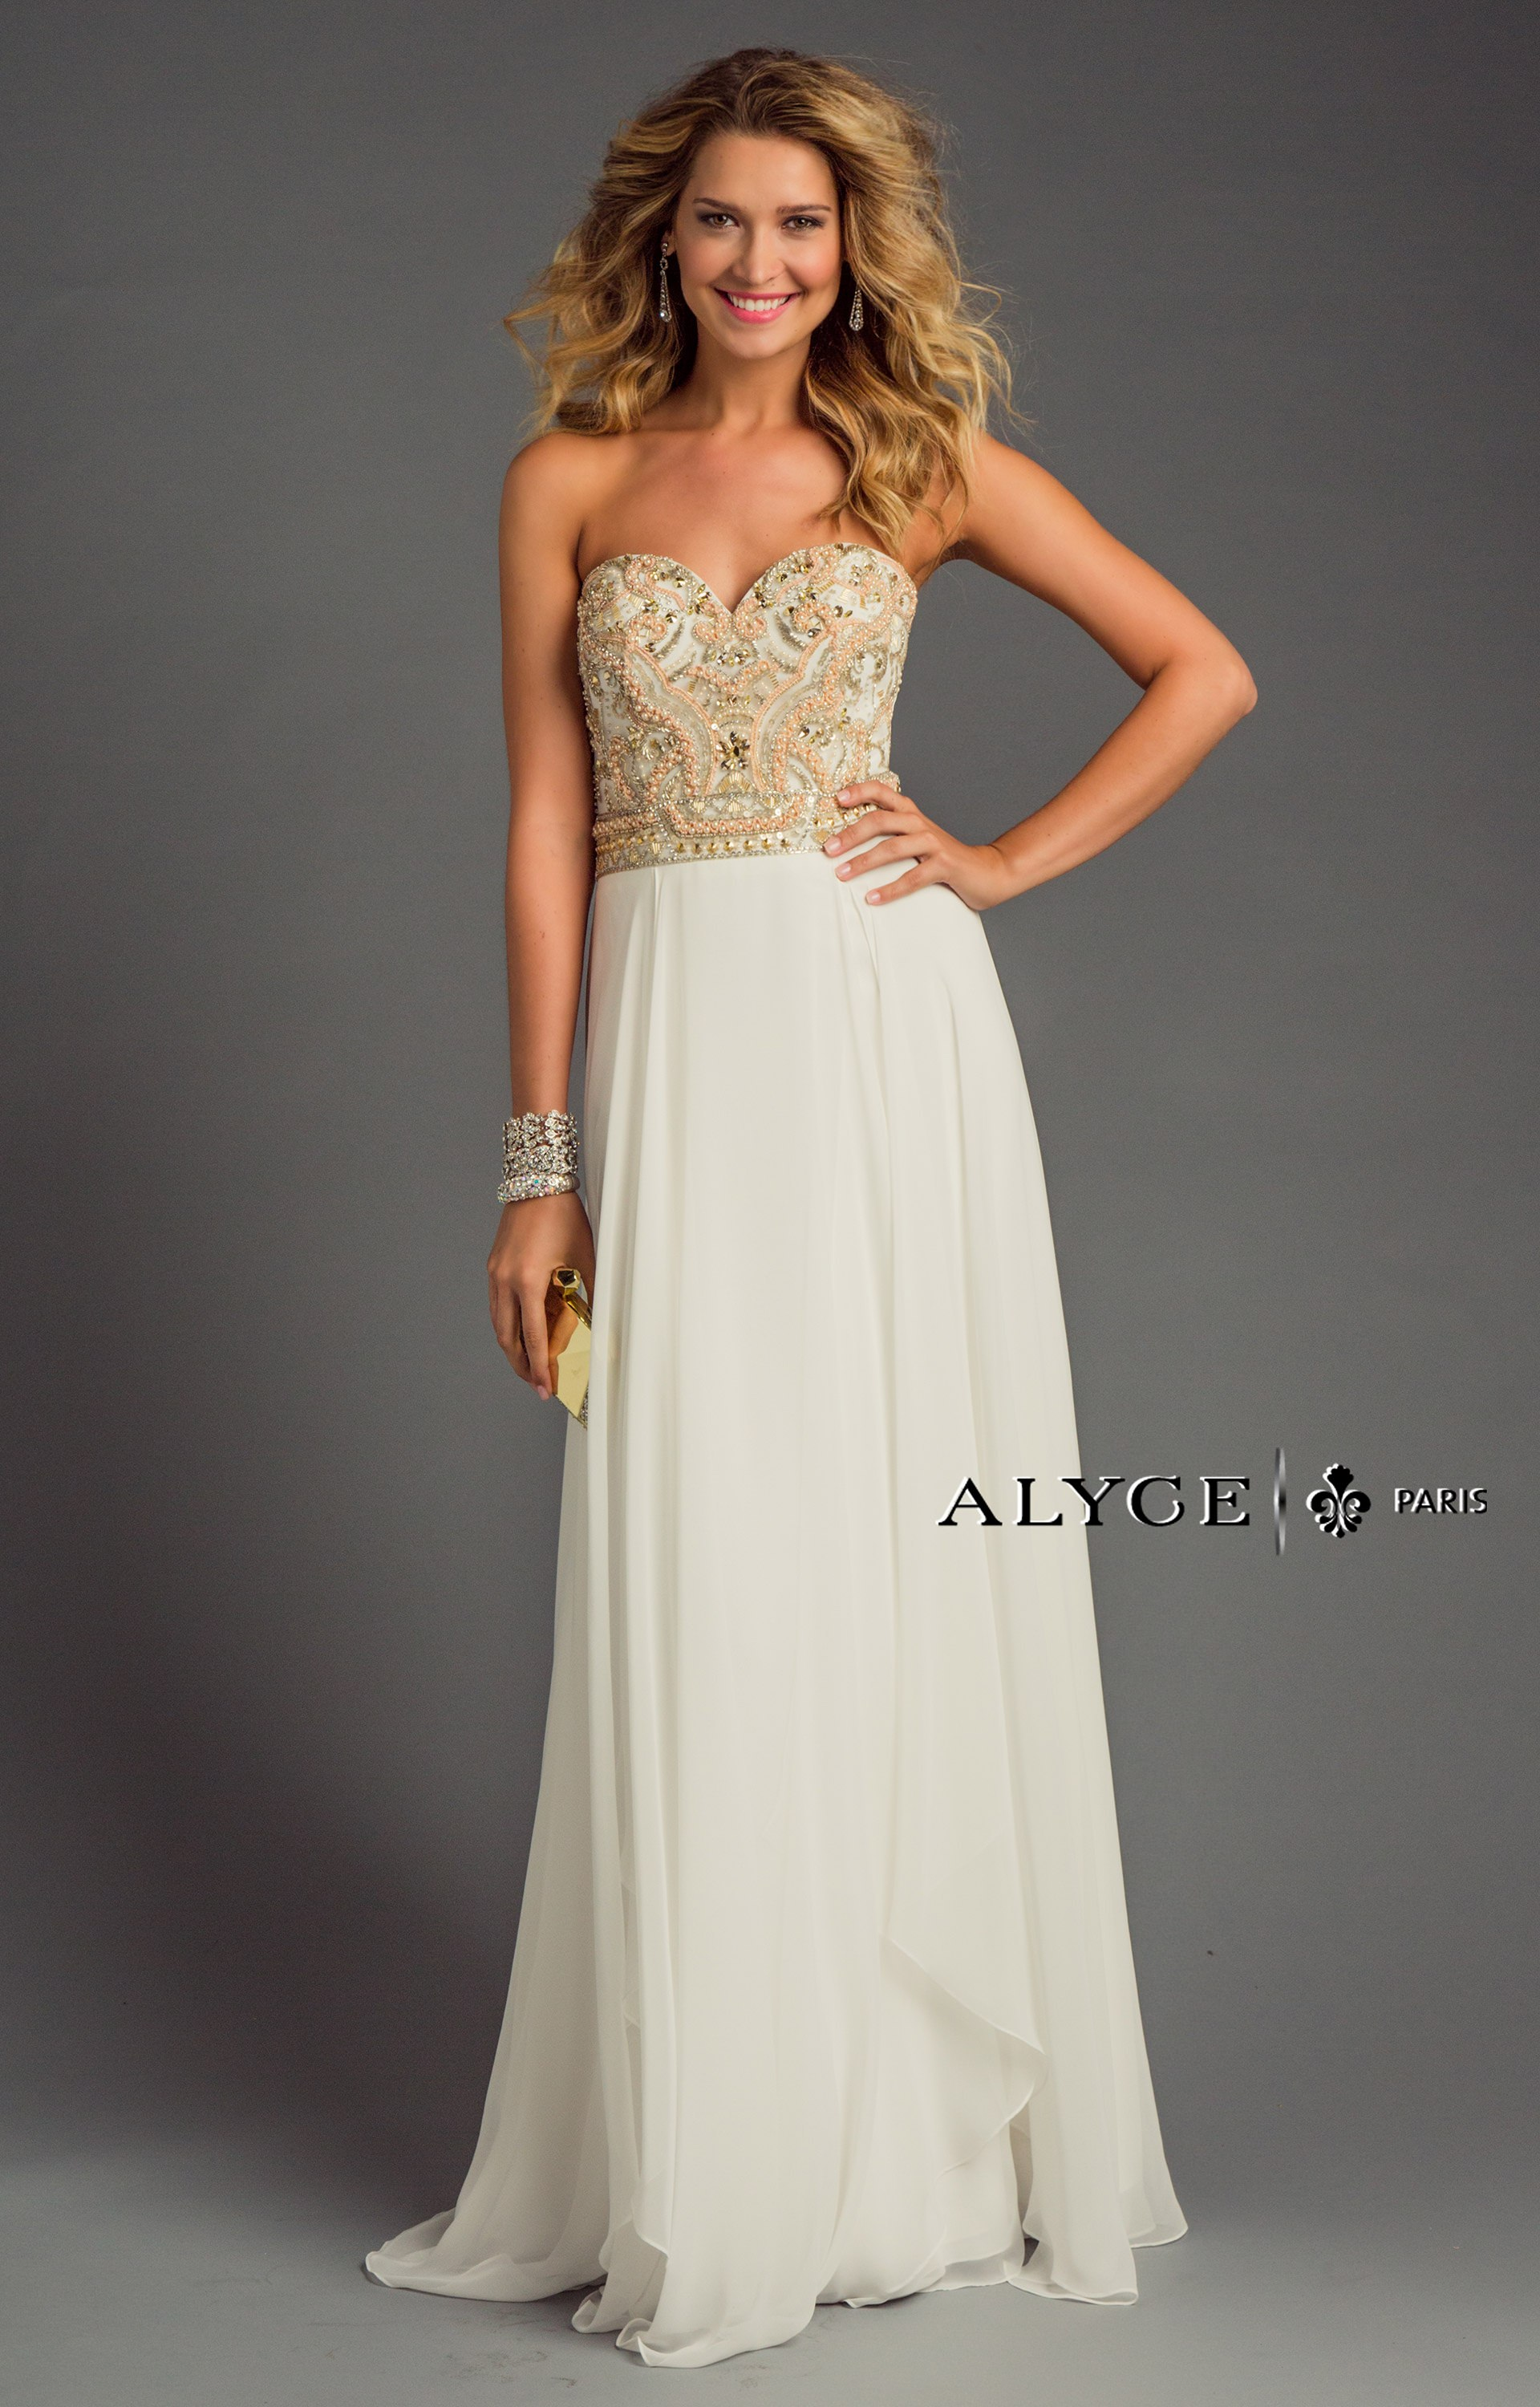 Alyce Paris 6420 Delicate Daring Gown Prom Dress